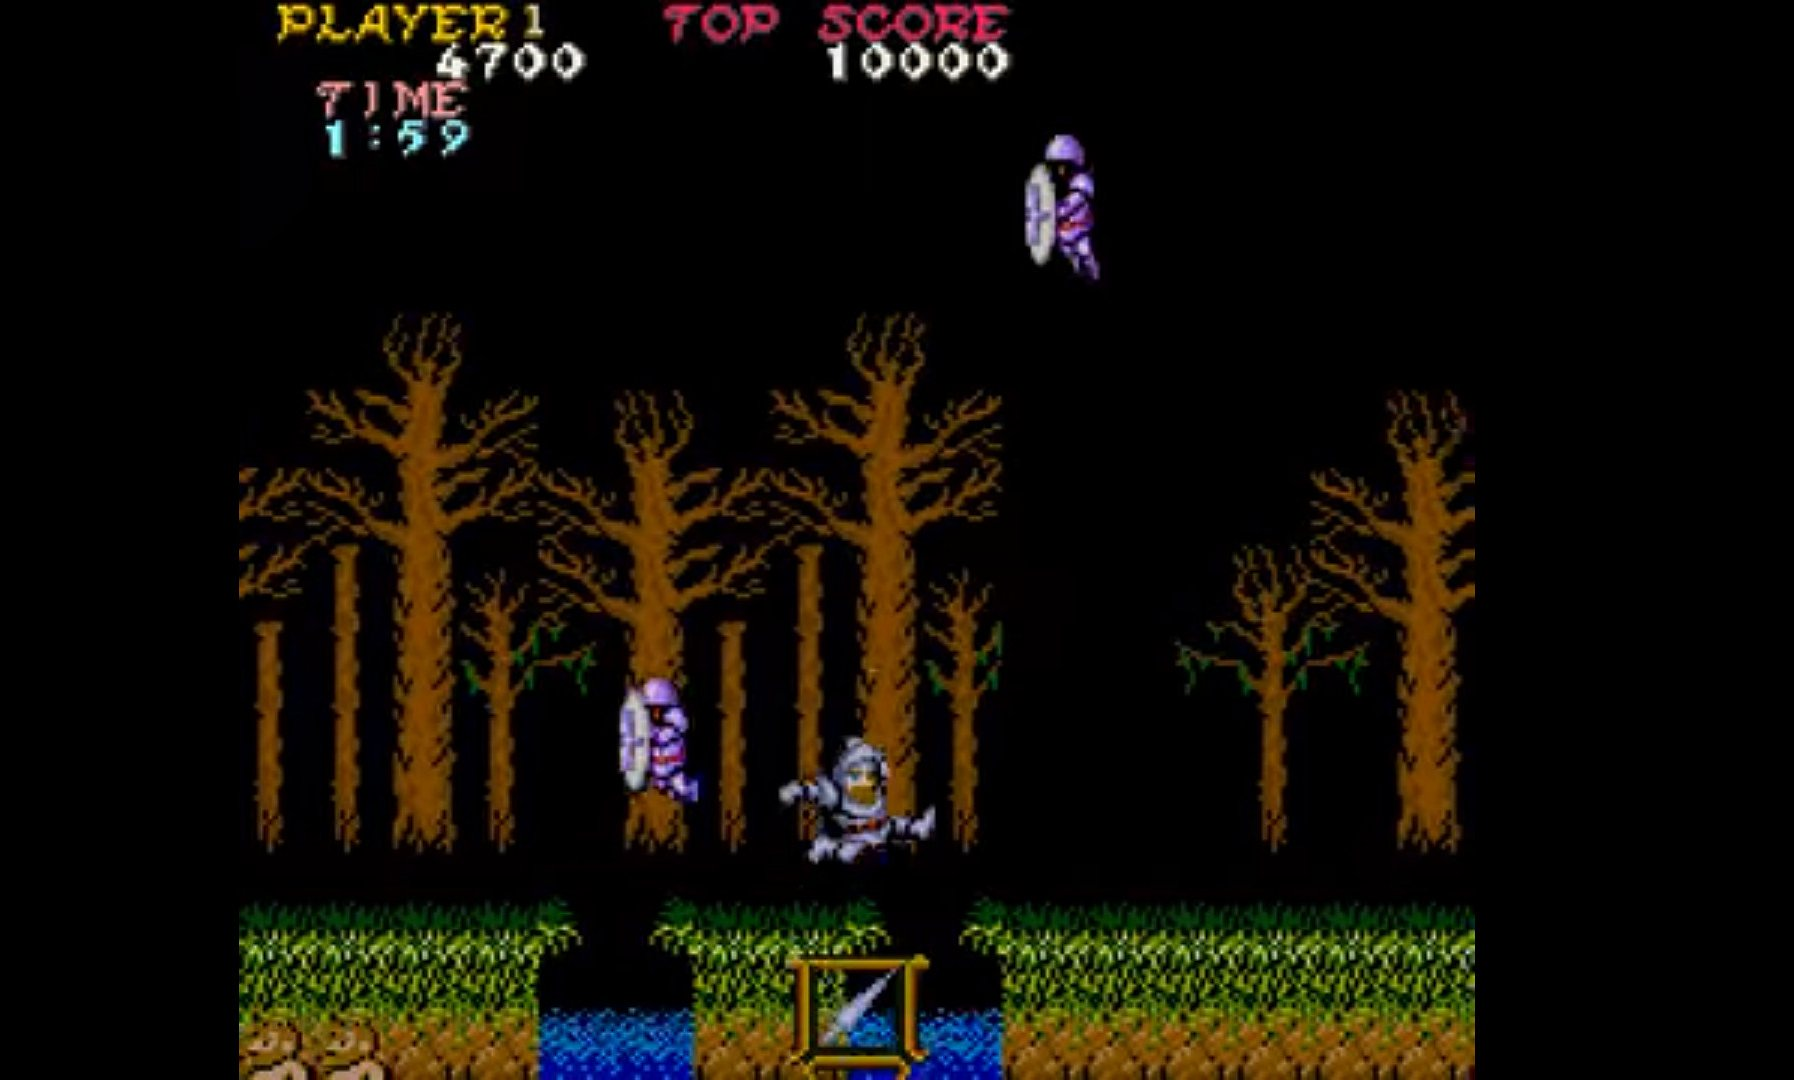 Ghosts 'n Goblins (Capcom, 1985)